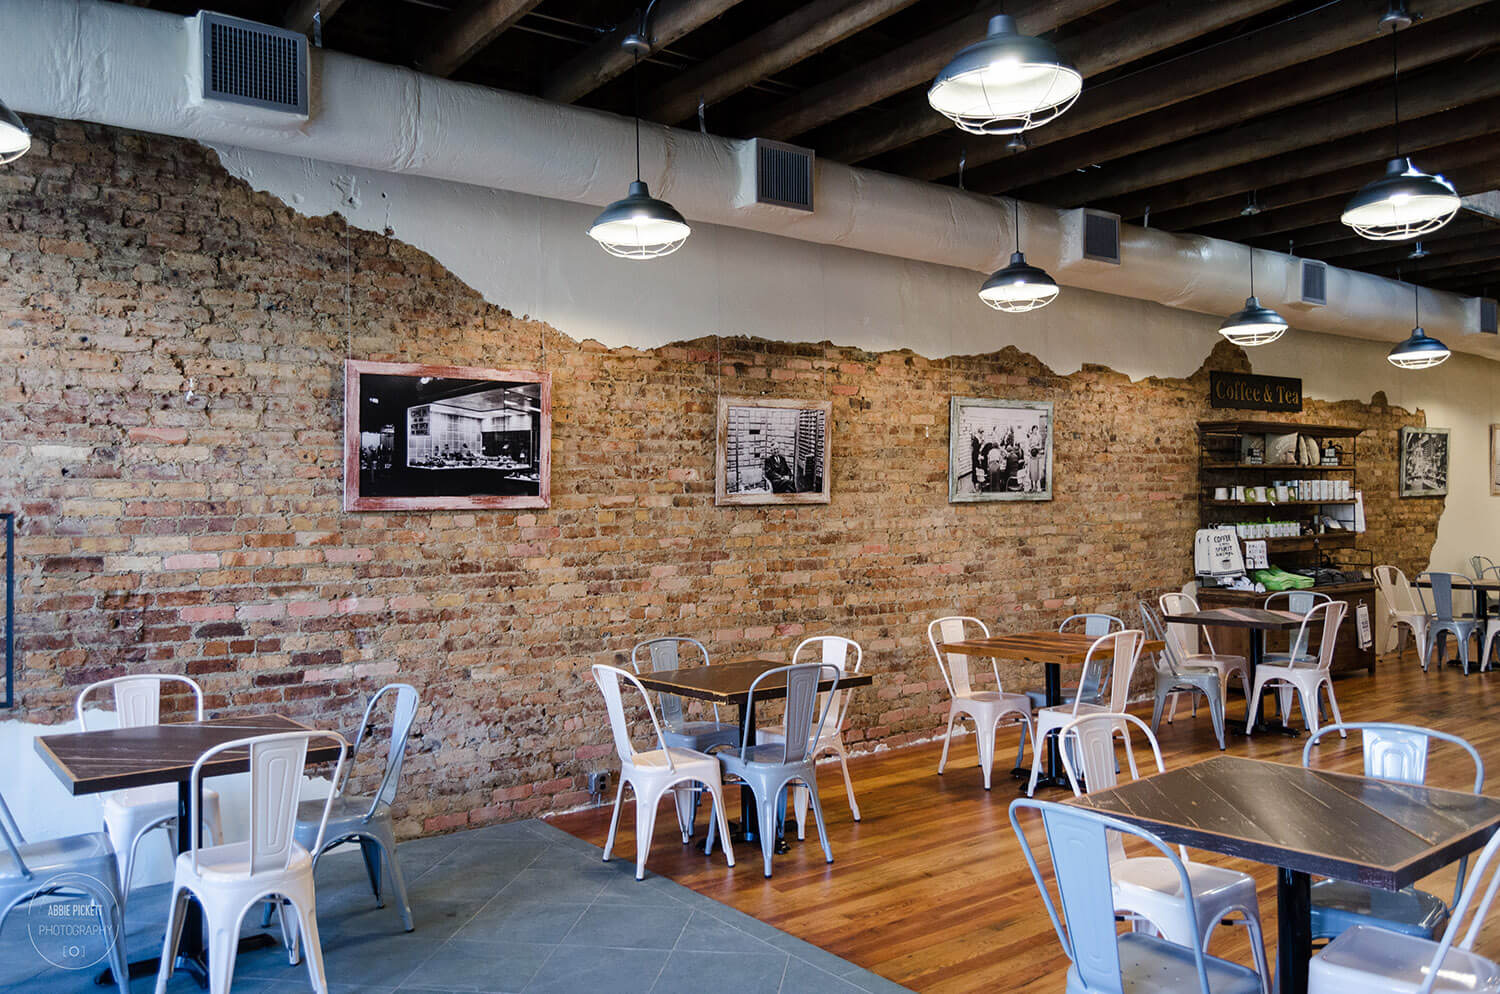 Bird & Bean – Coffee House located in Downtown Dothan